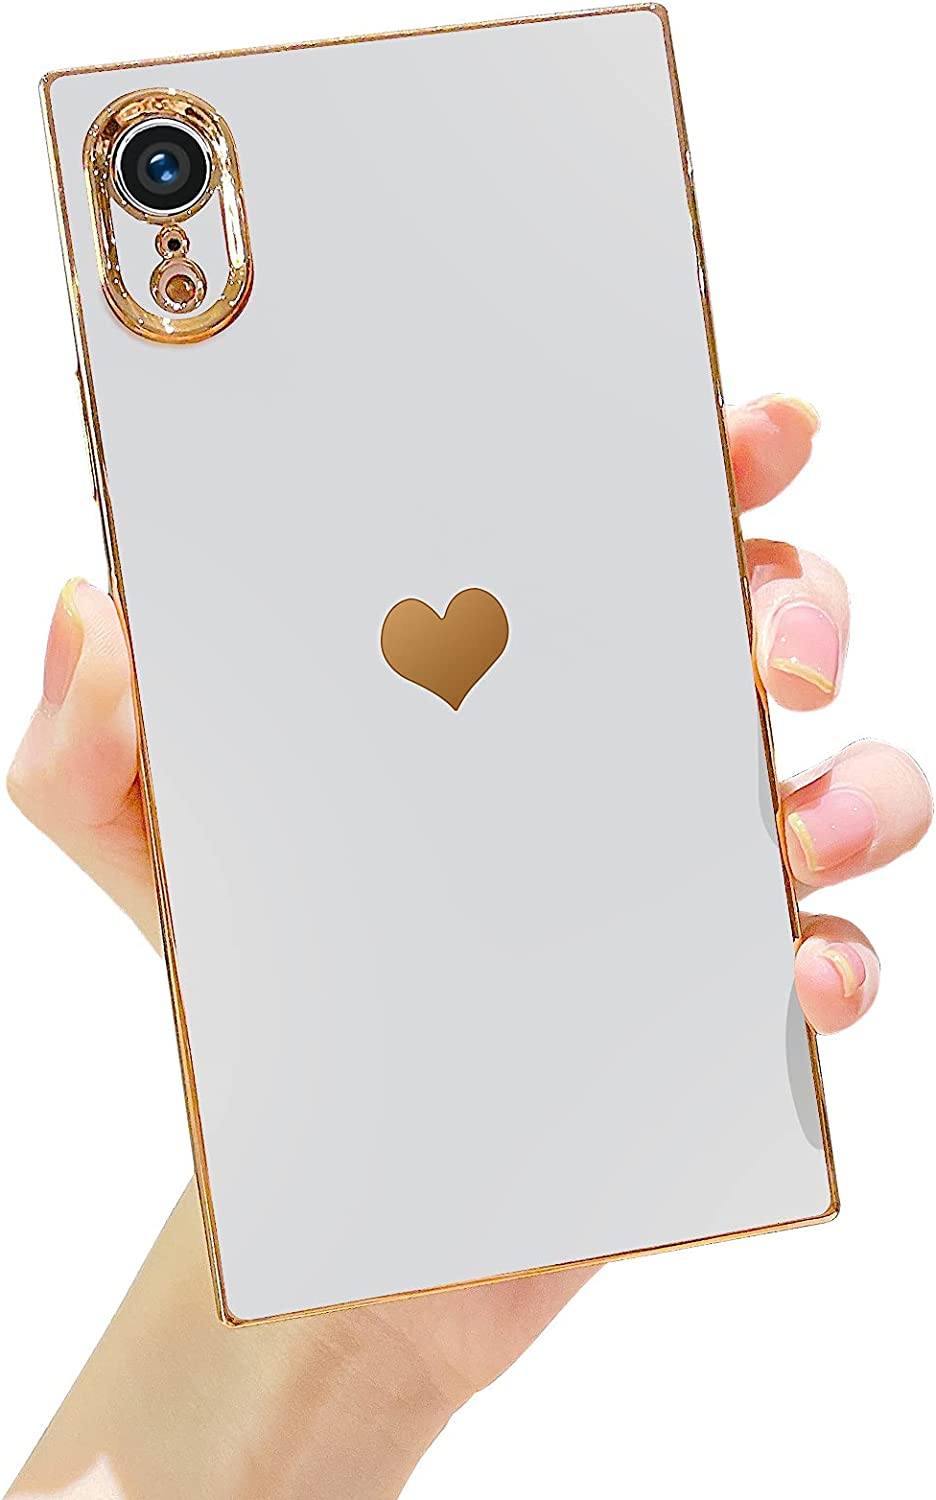 Robotsky for iPhone XR Case, Square Edge Cute Glitter Plating Loving Heart Pattern Design Cases for Women Soft TPU Silicone Shockproof Bumper Shell Cover for iPhone XR 6.1 inch 2018 (White)